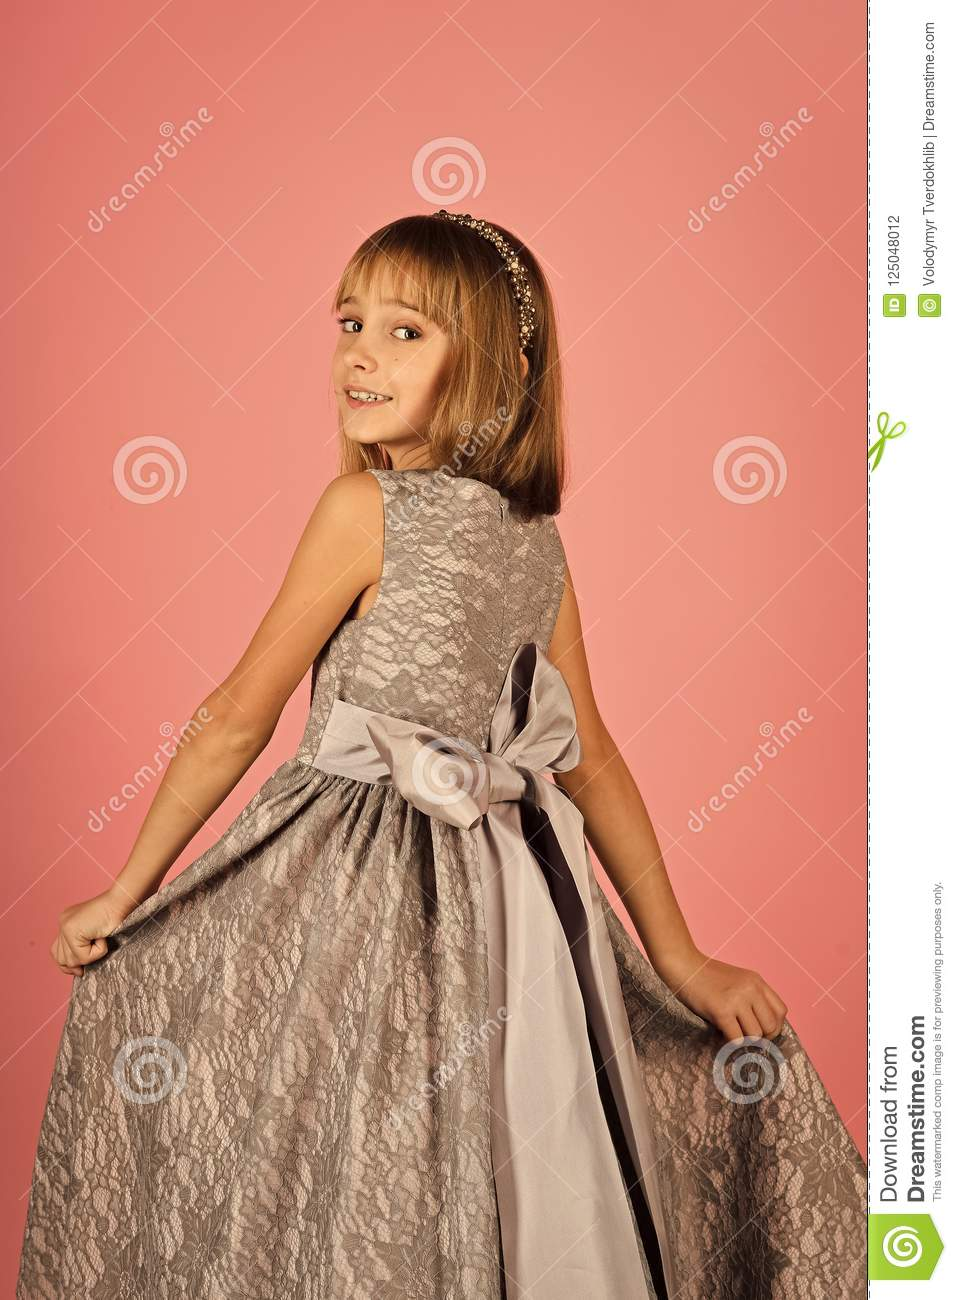 e8128de7e8aa Look, hairdresser, makeup. Child girl in stylish glamour dress, elegance. Little  girl in fashionable dress, prom. Fashion model on pink background, beauty.